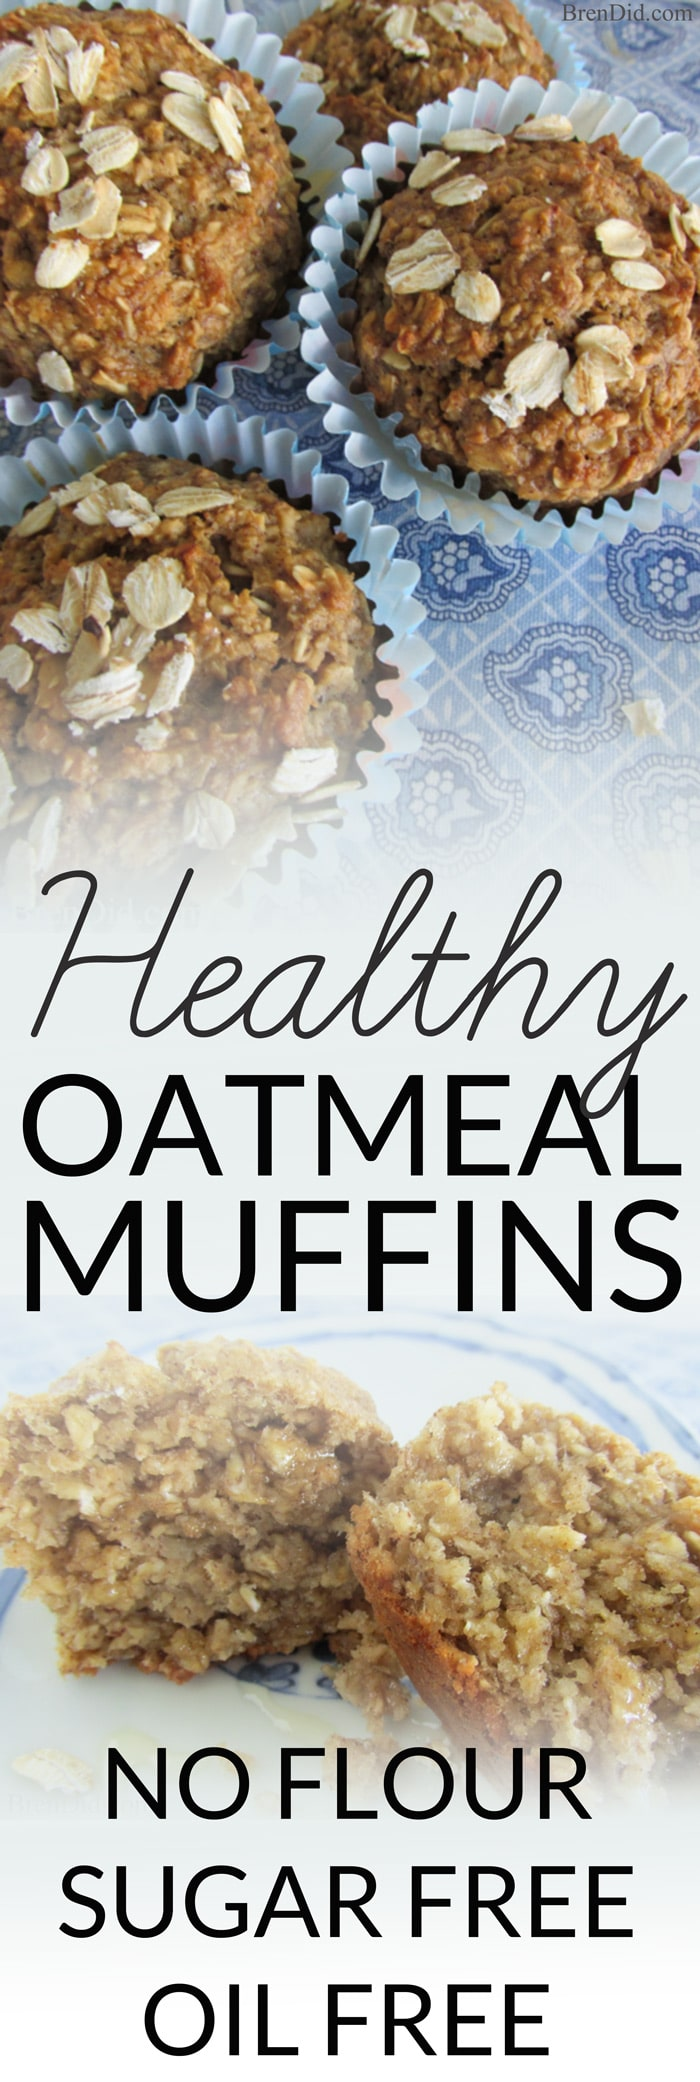 Healthy Oatmeal Muffins - Most muffins = junk food! These use no refined sugar, no oil and no flour. Must try! #glutenfree #sugarfree #nooil #oatmealmuffins #muffins #healthymuffins #brendid